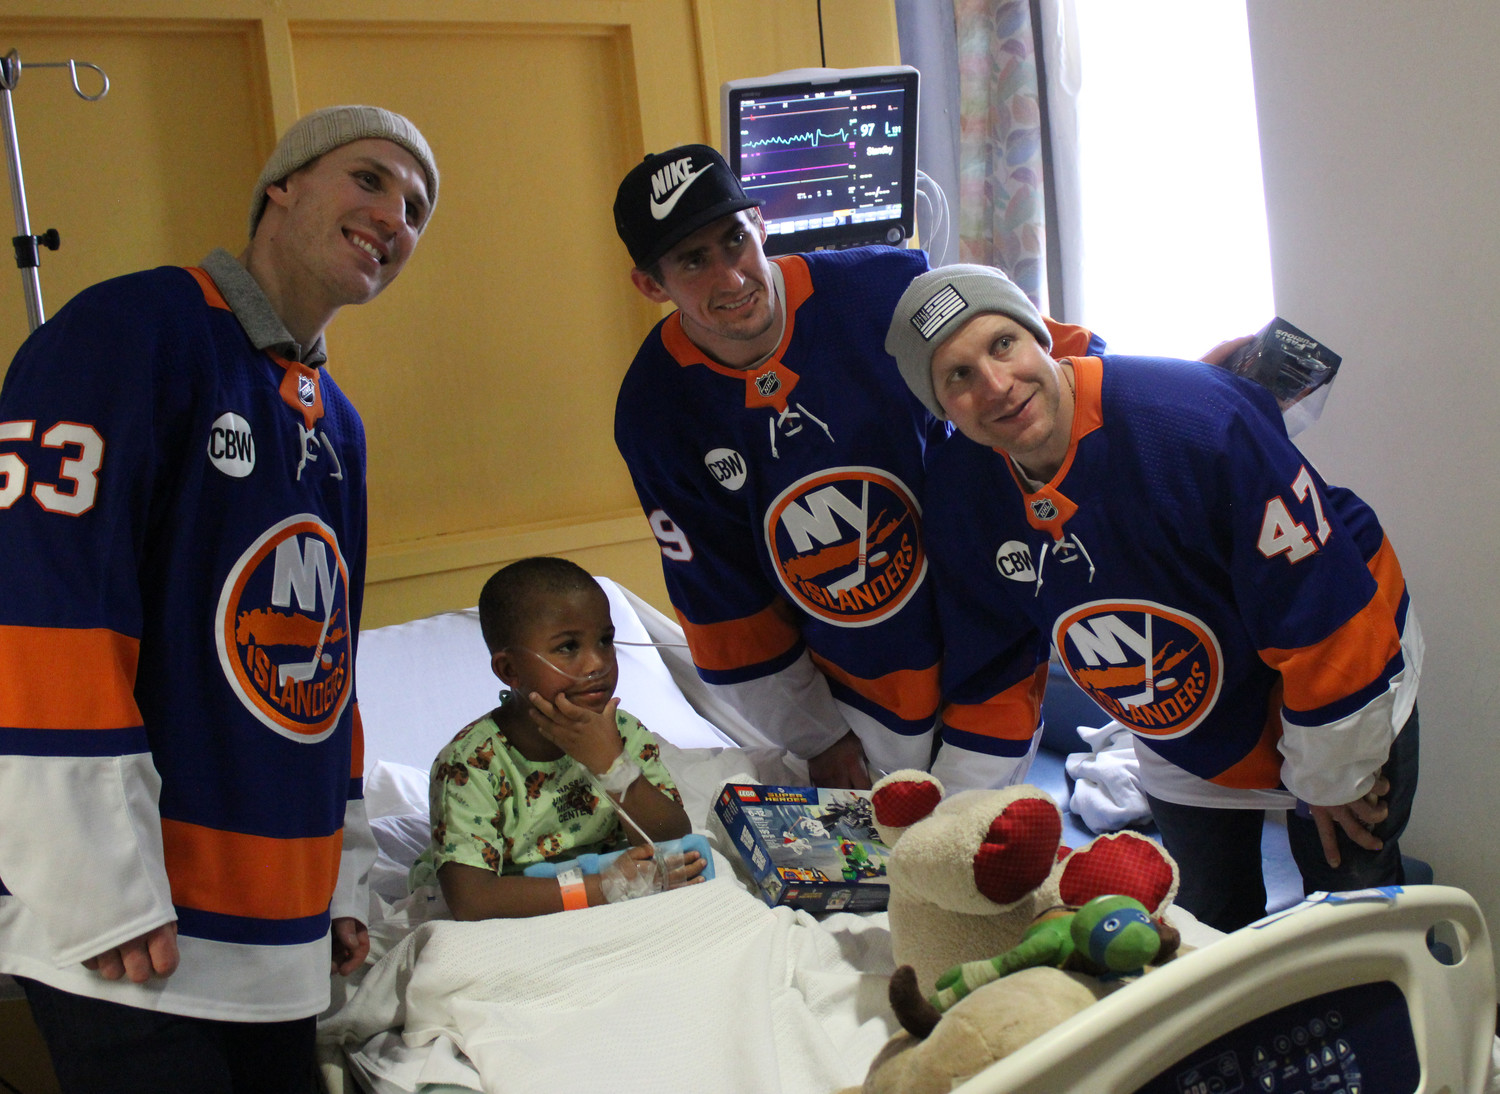 Corey Owens, 5, second-from-left, beamed when he saw Casey Cizikas, left, Leo Komarov and Brock Nelson enter his room at NUMC.